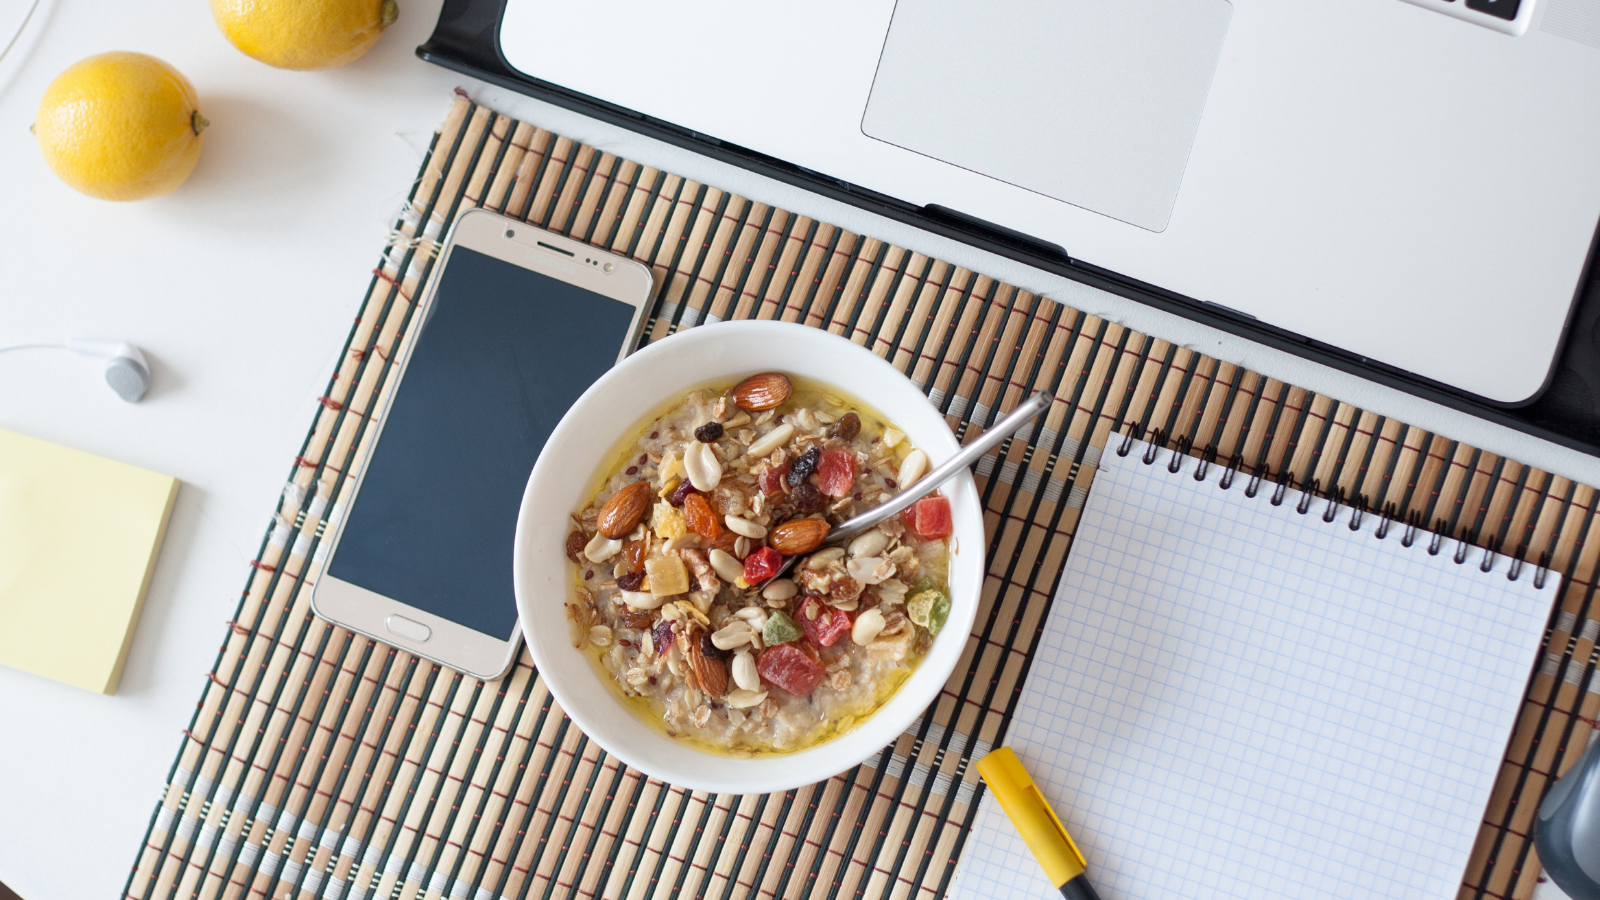 5 keys to eating during the home office